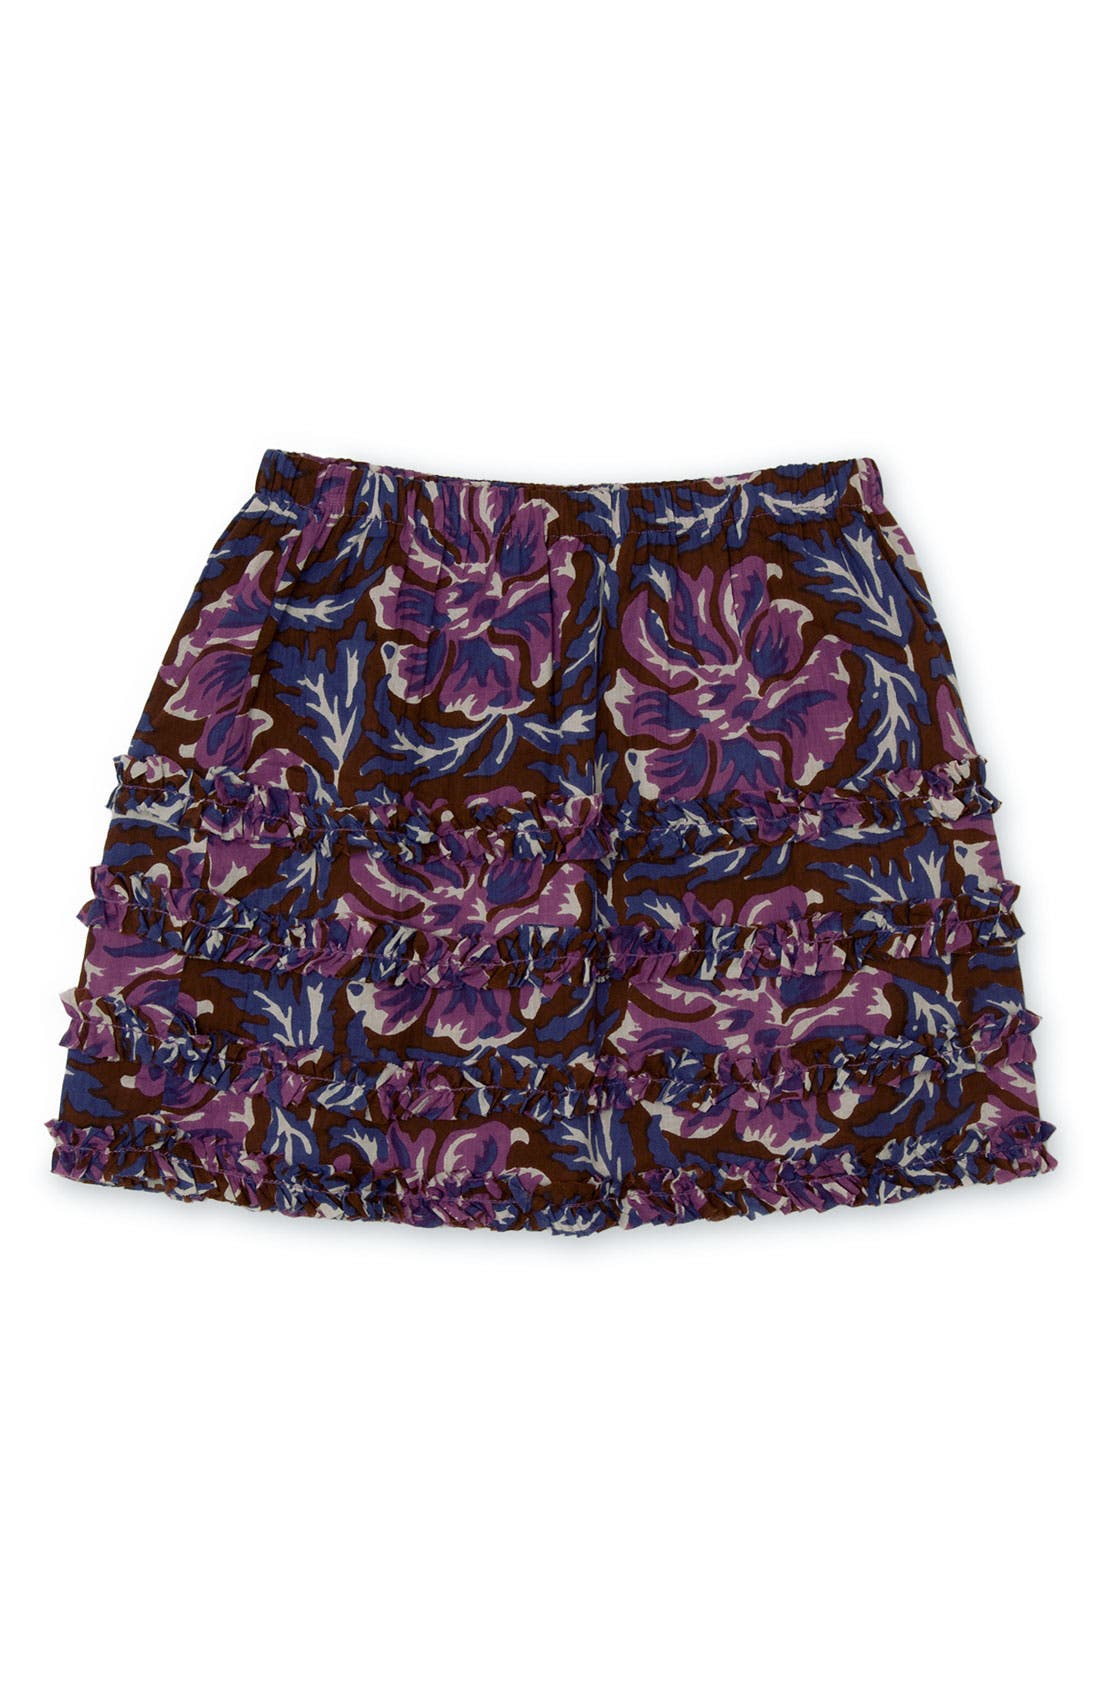 Main Image - Peek 'Anna' Skirt (Toddler)